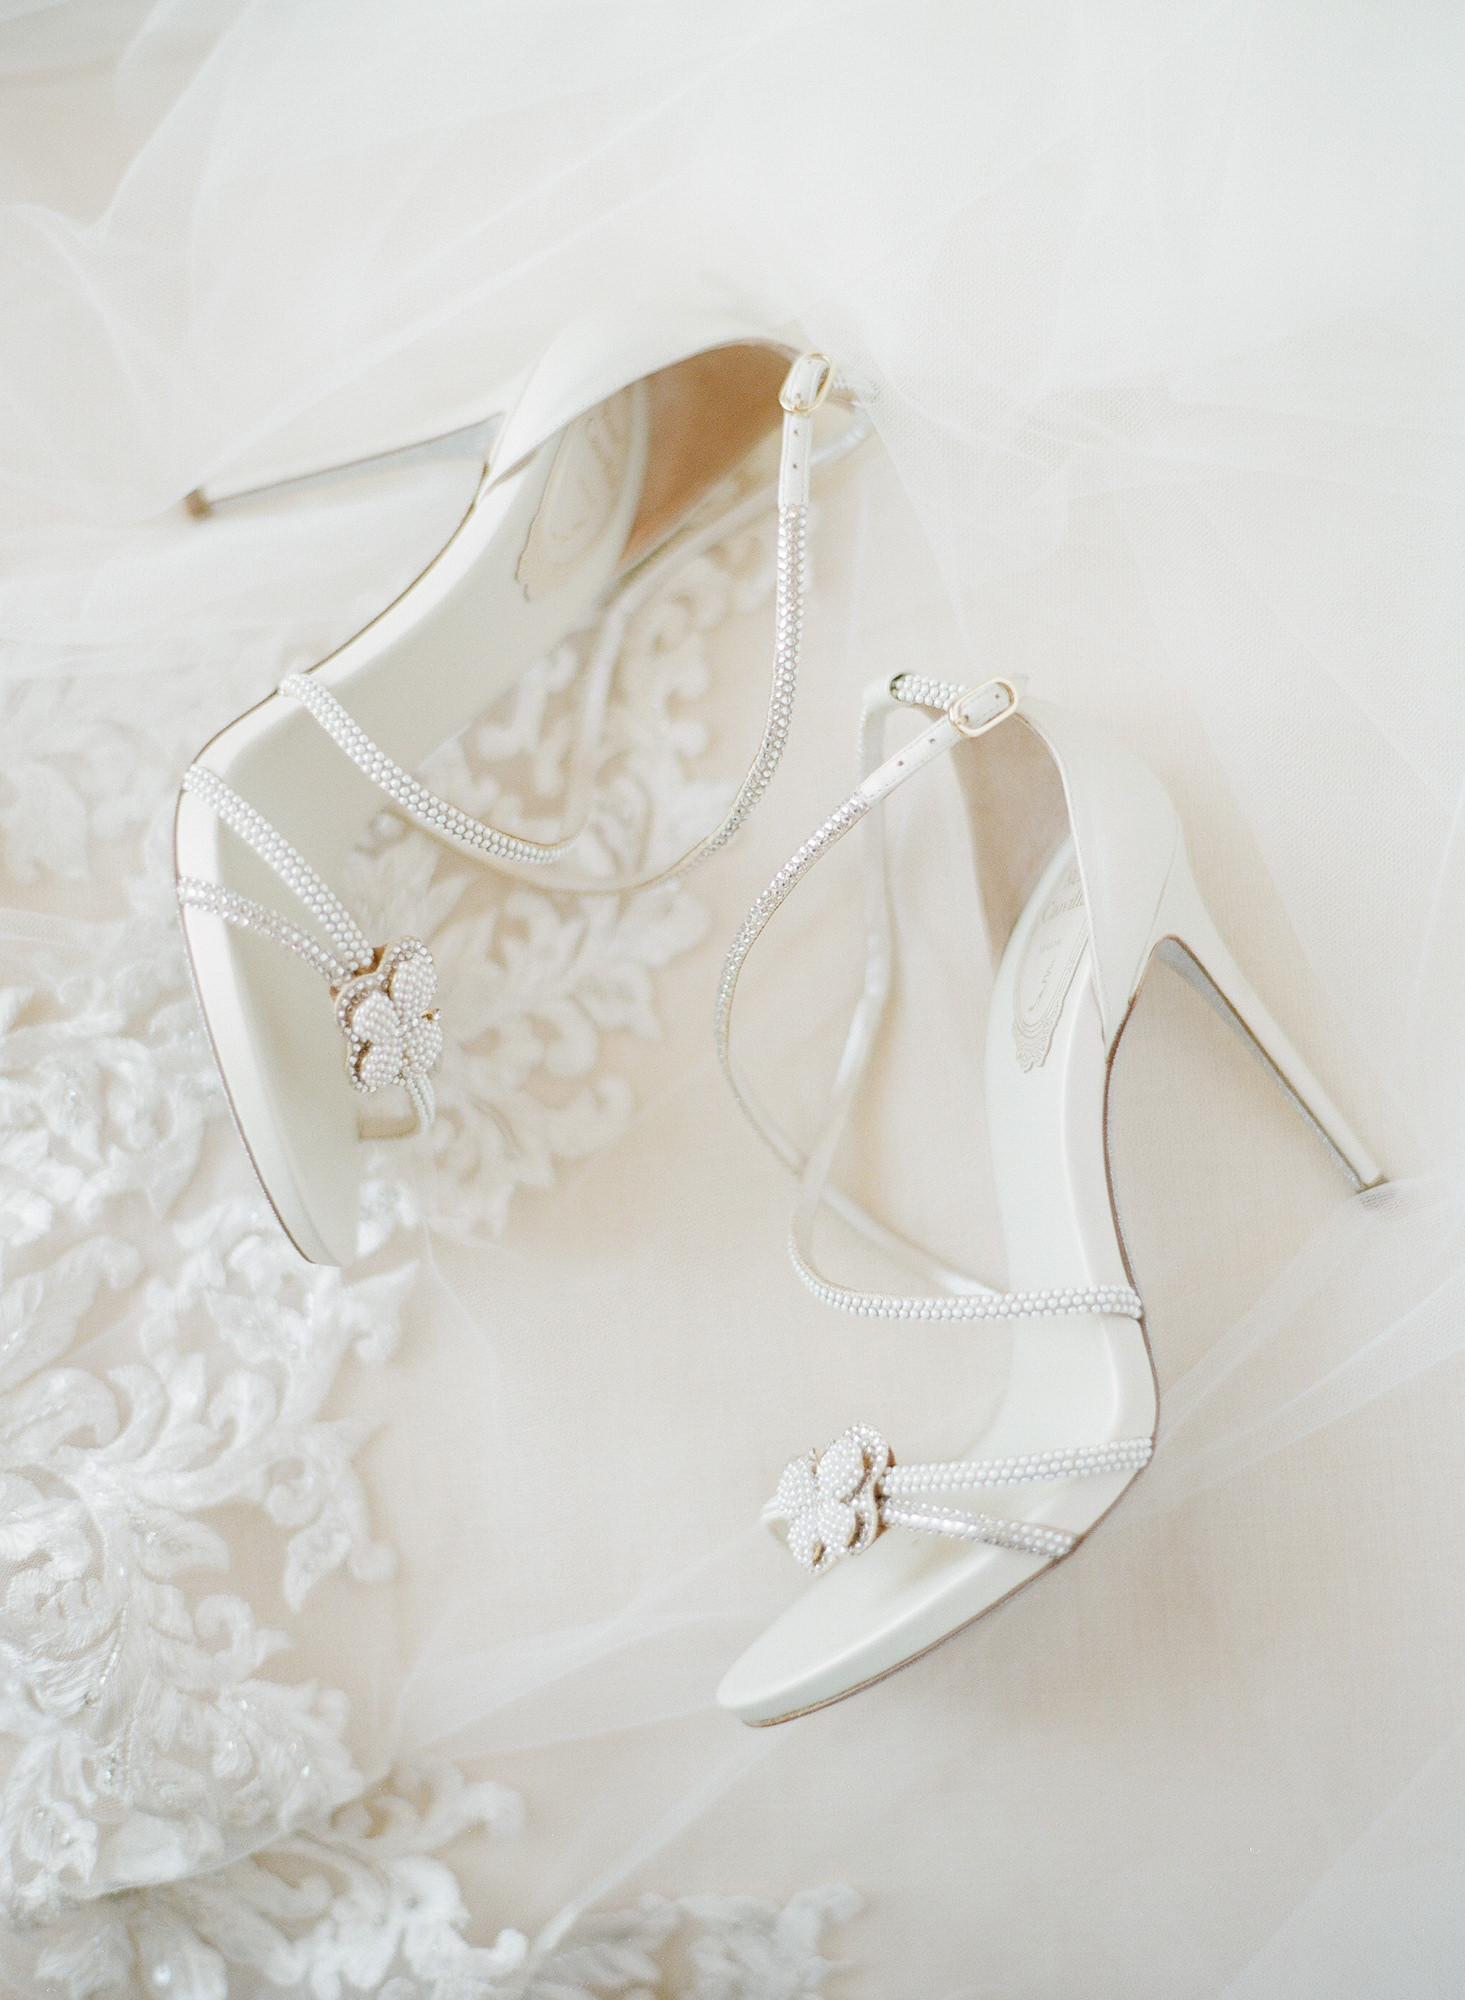 Rena Caovilla white sandals with beaded flowers - Greg Finck Photography